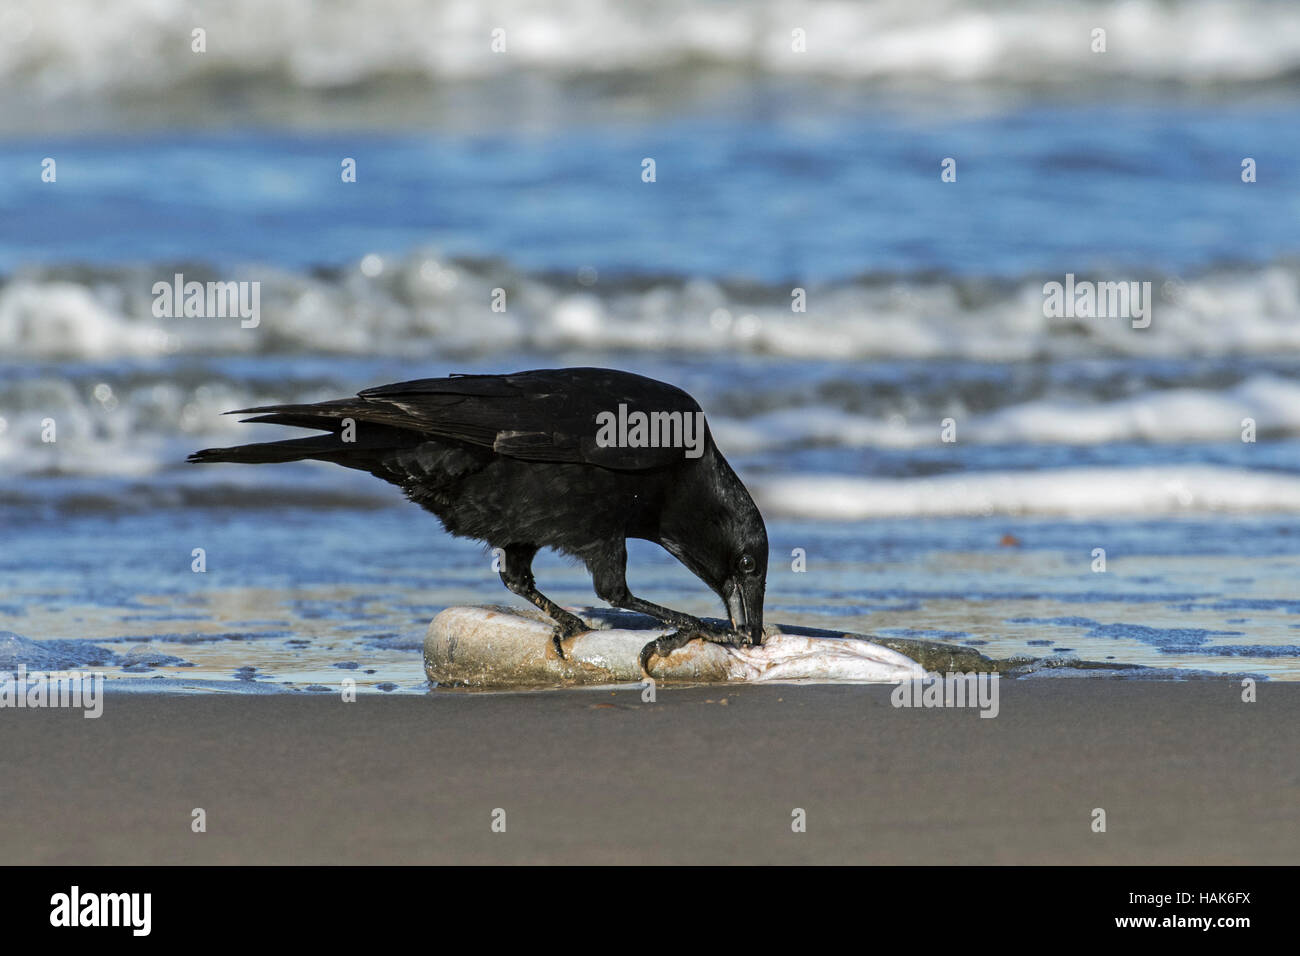 Scavenging carrion crow (Corvus corone) feeding on dead European conger eel (Conger conger) washed ashore on beach - Stock Image